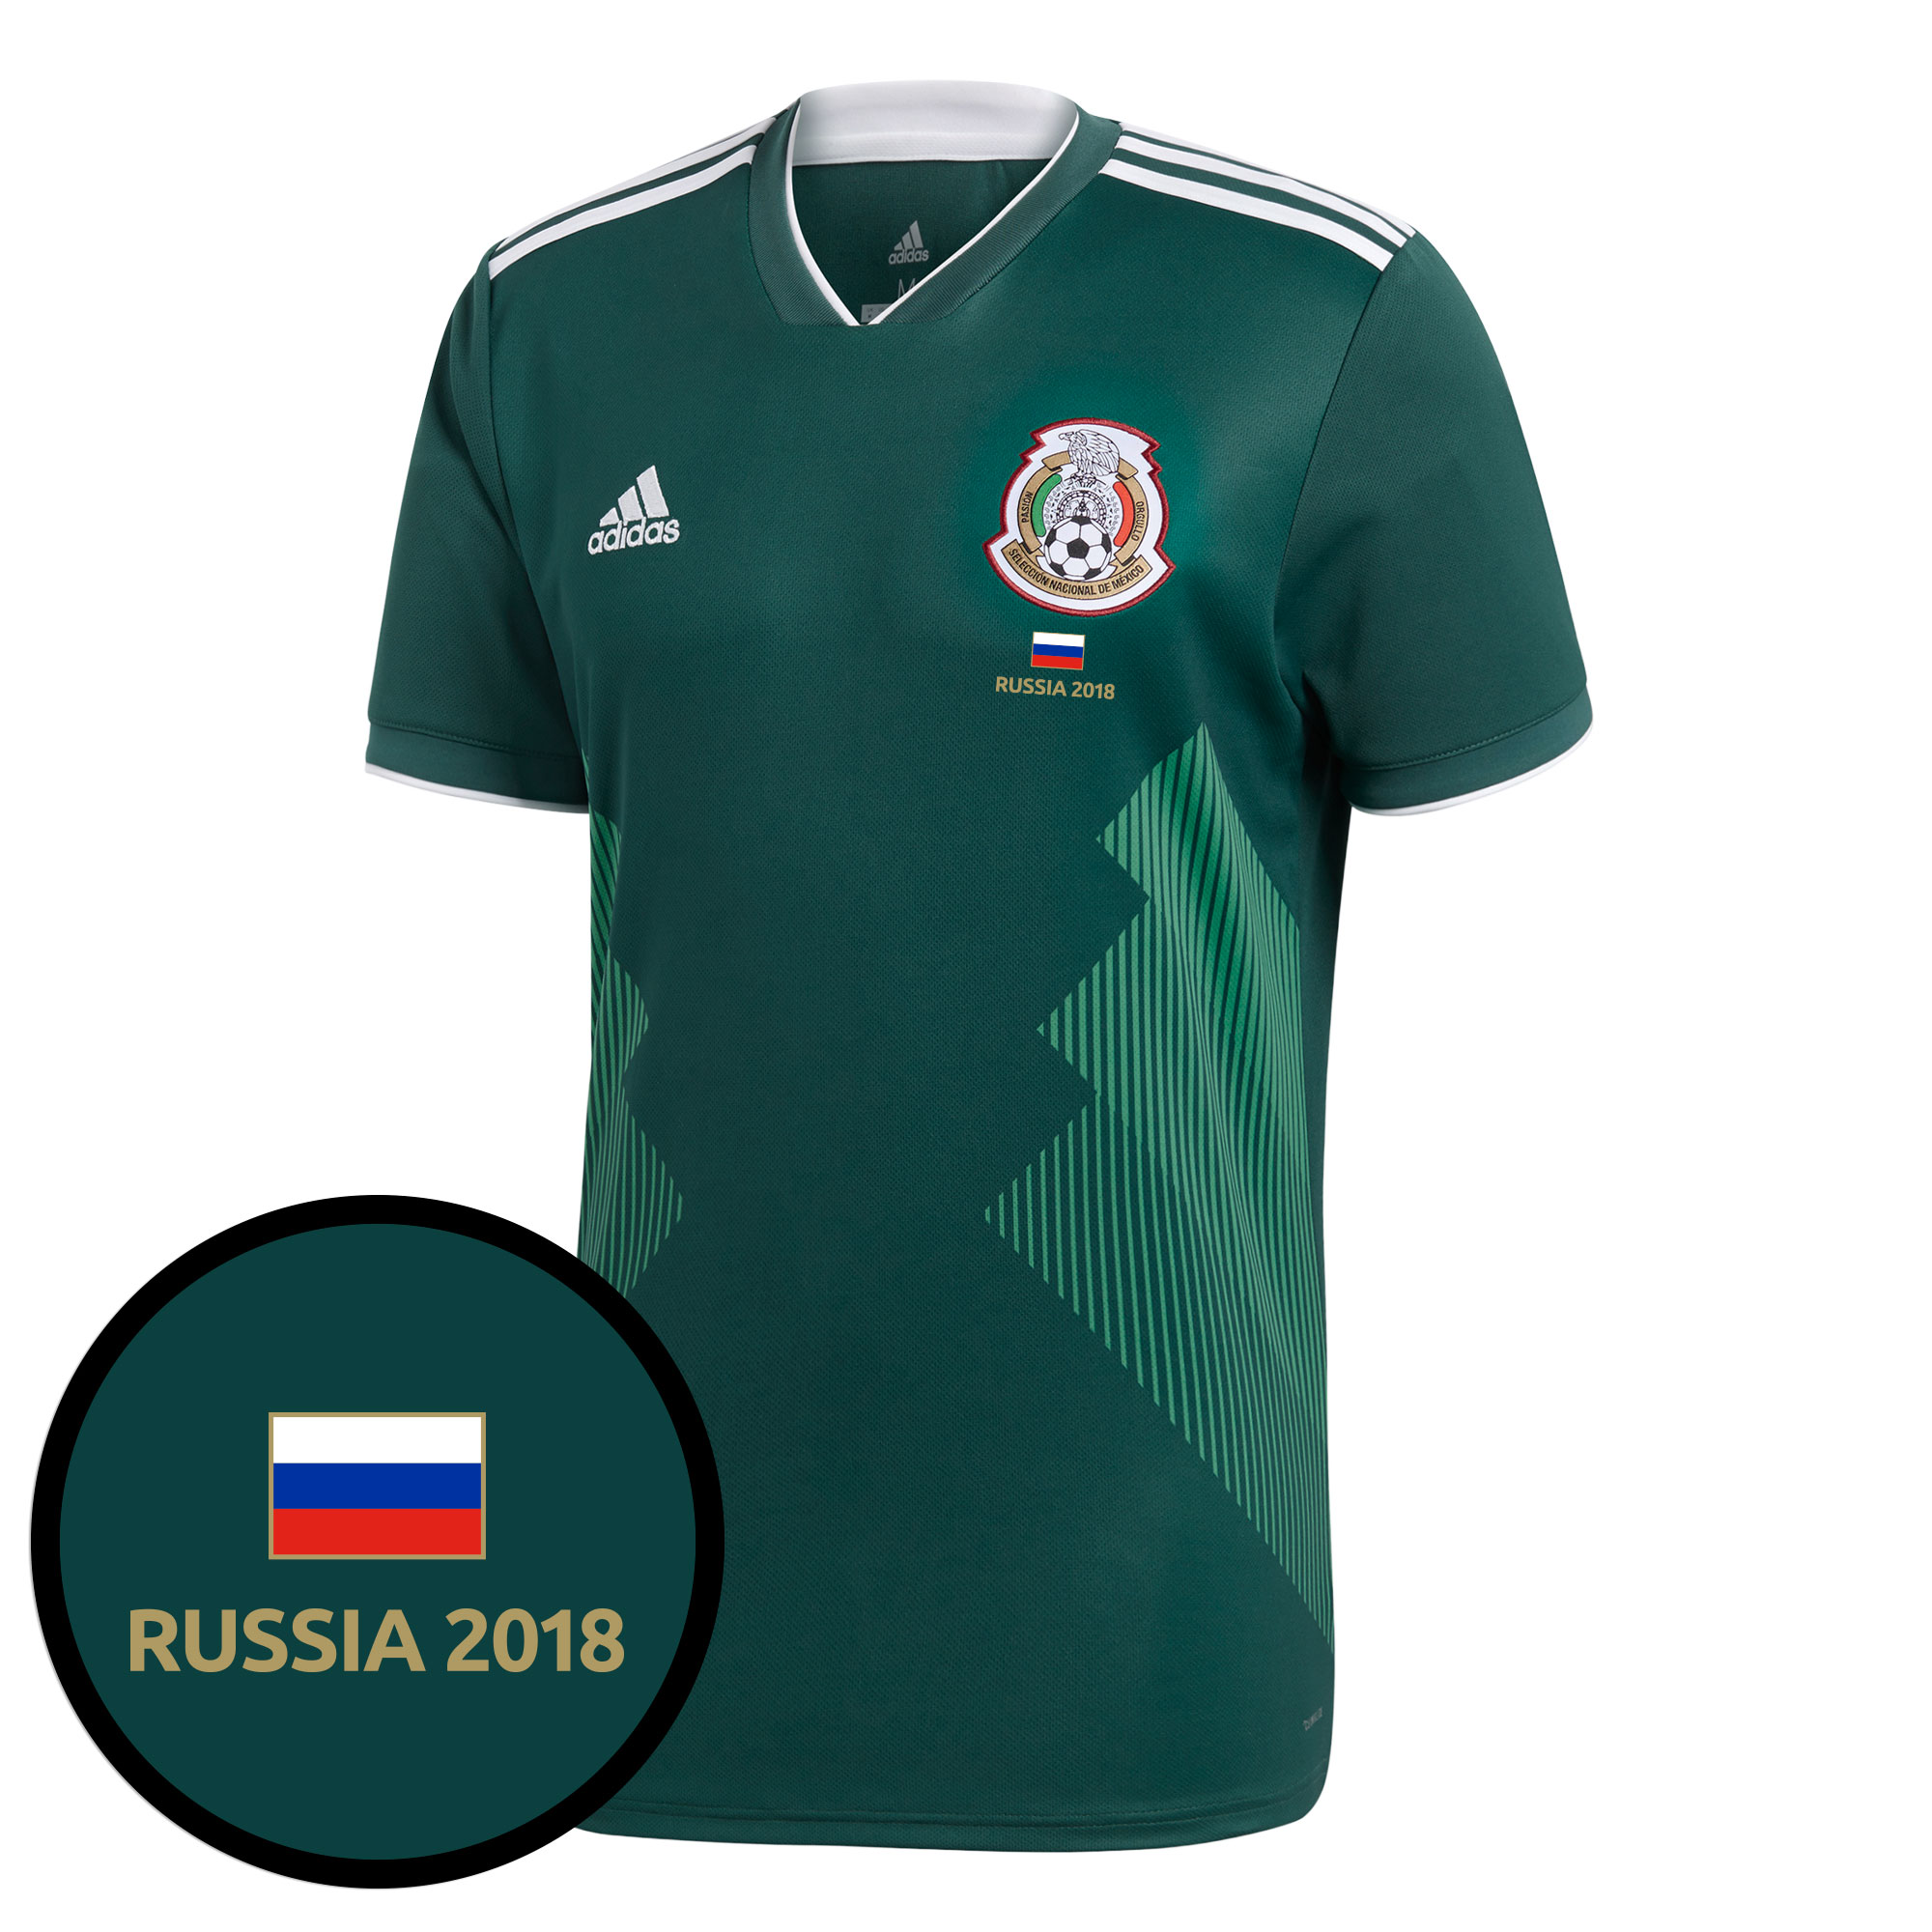 2f27411b11f Mexico Football Kits | Cheap Mexico Football Kits | Mexico Kits